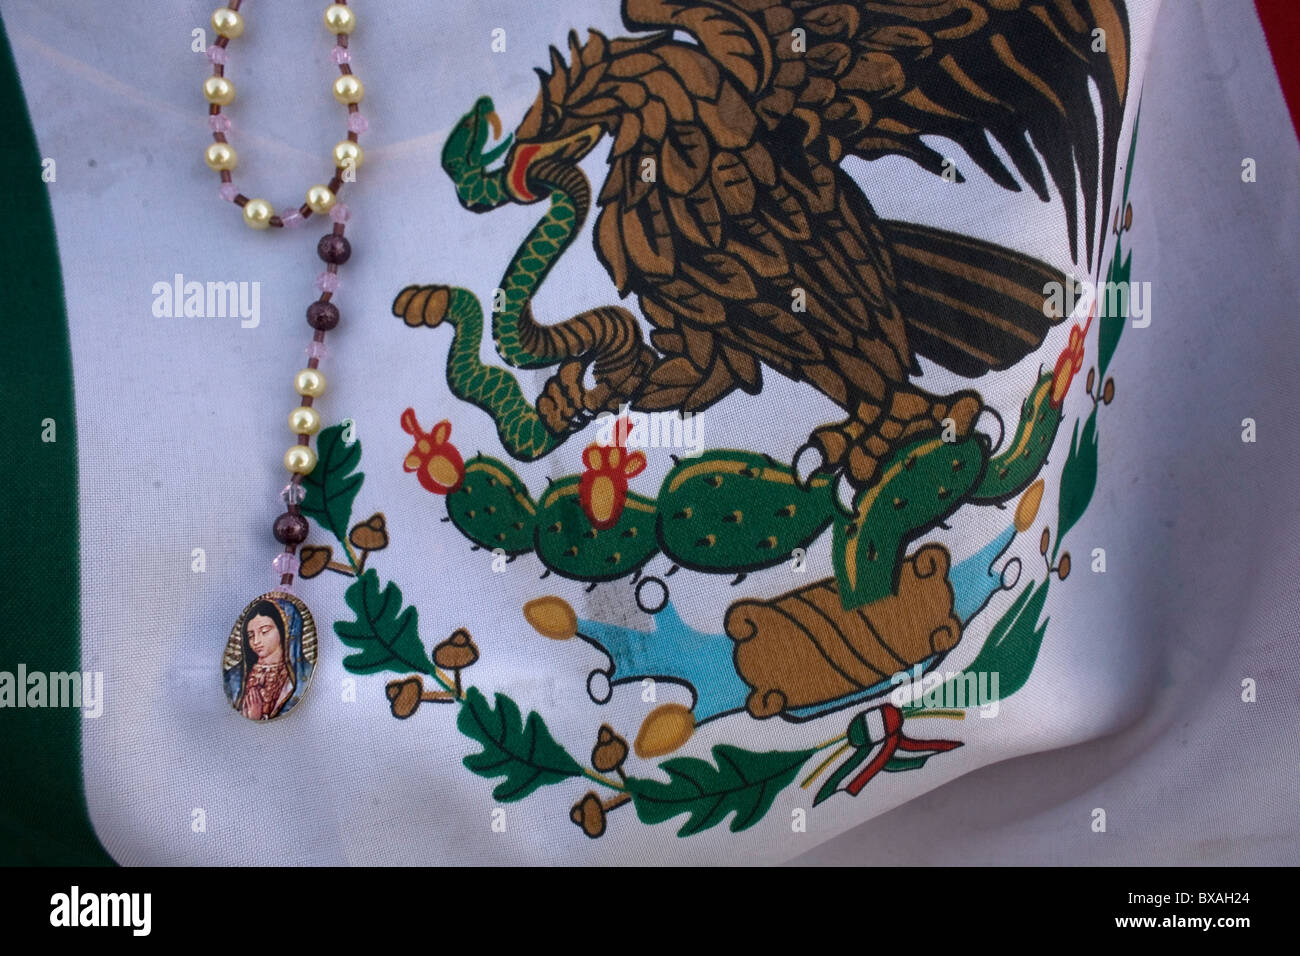 a mexican flag decorates an image of the our lady of guadalupe in